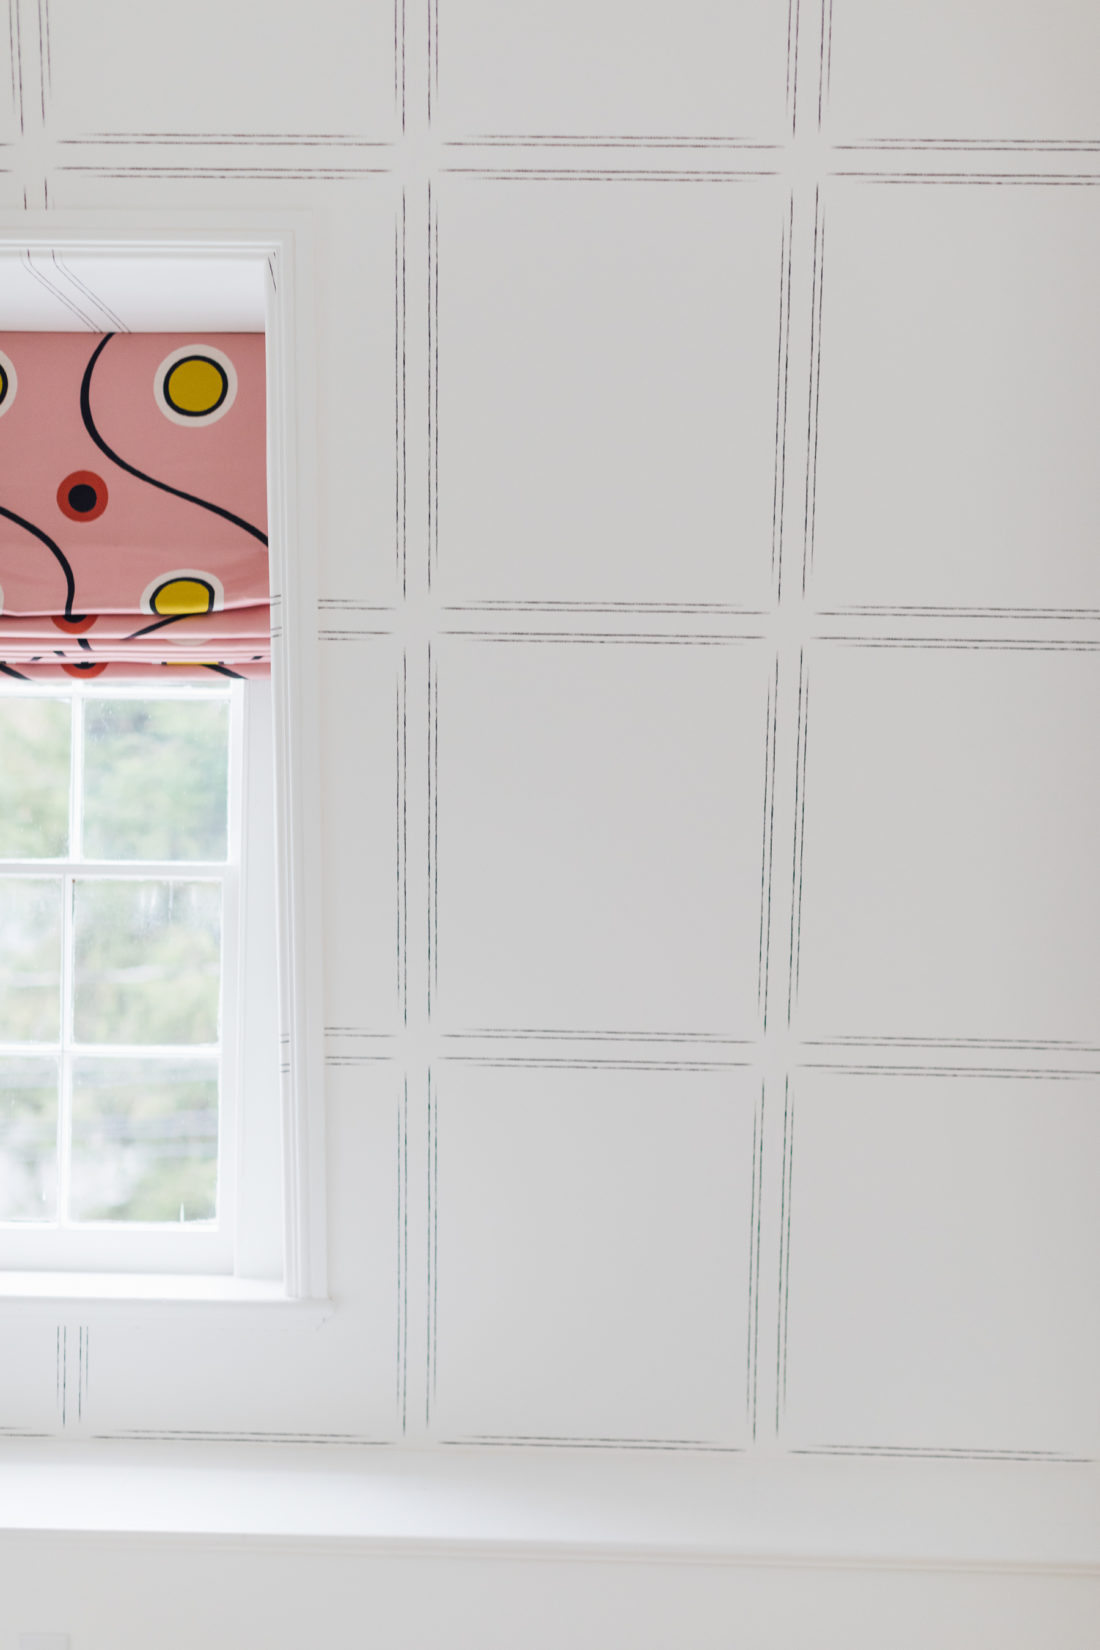 Wallpaper inside Eva Amurri's newly finished Guest Suite